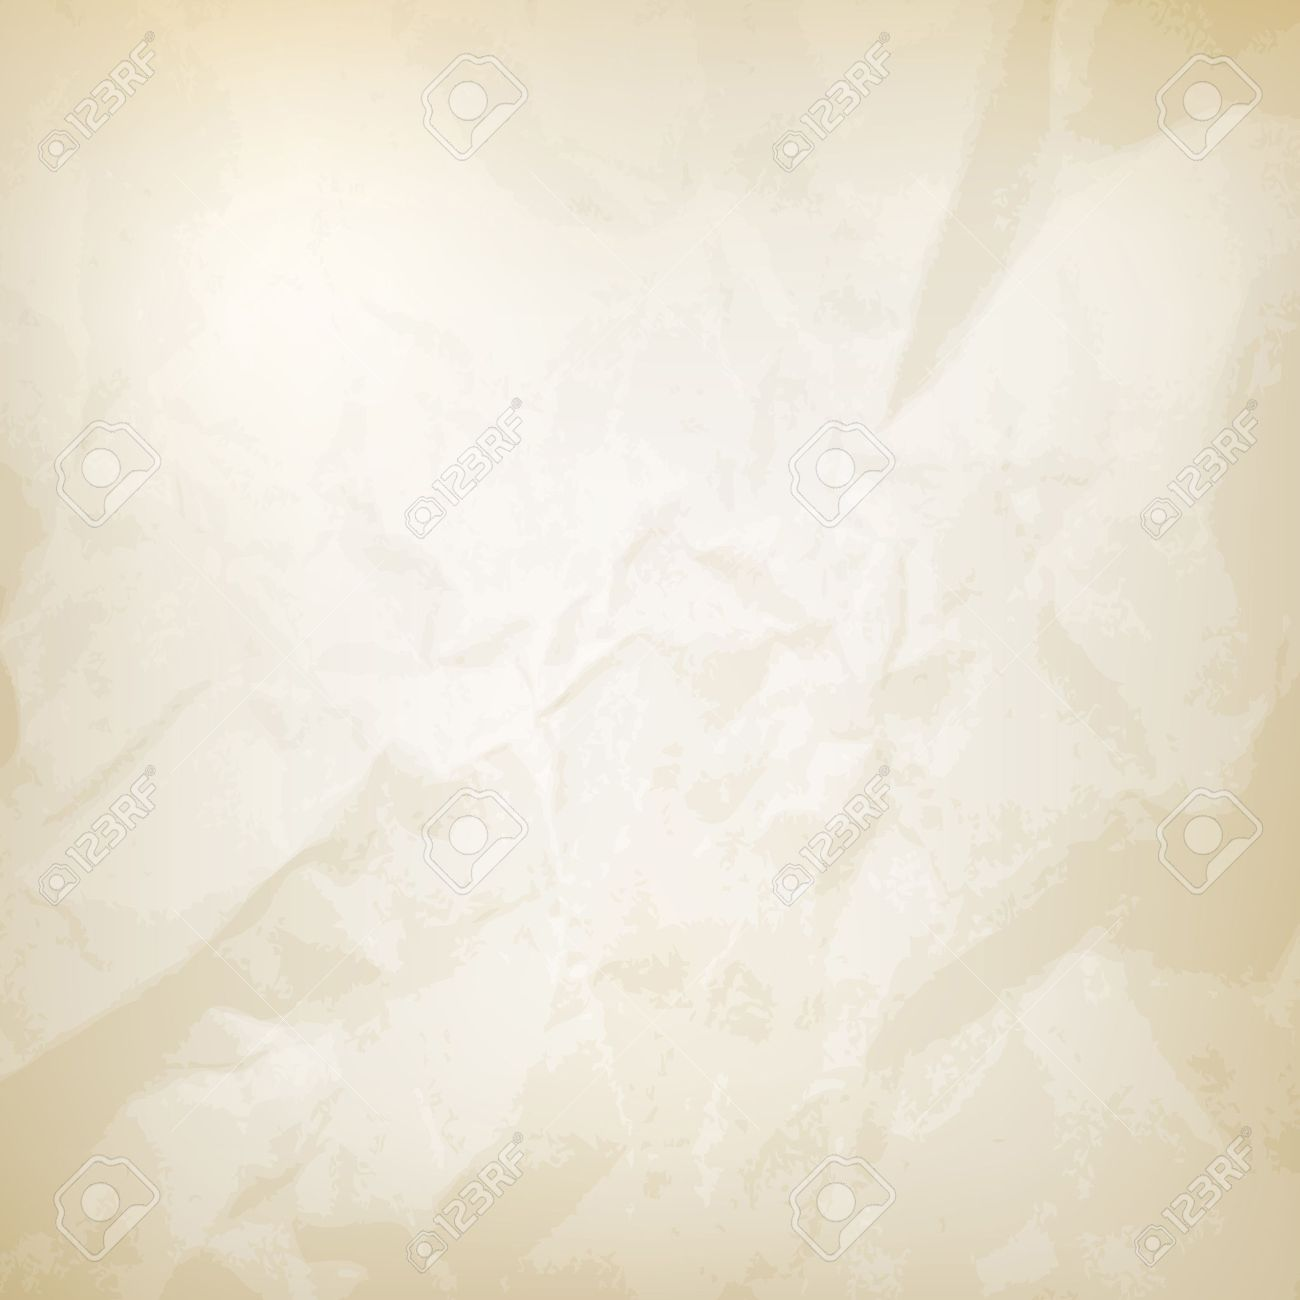 wrinkled paper texture vector illustration. saved in eps 10 file